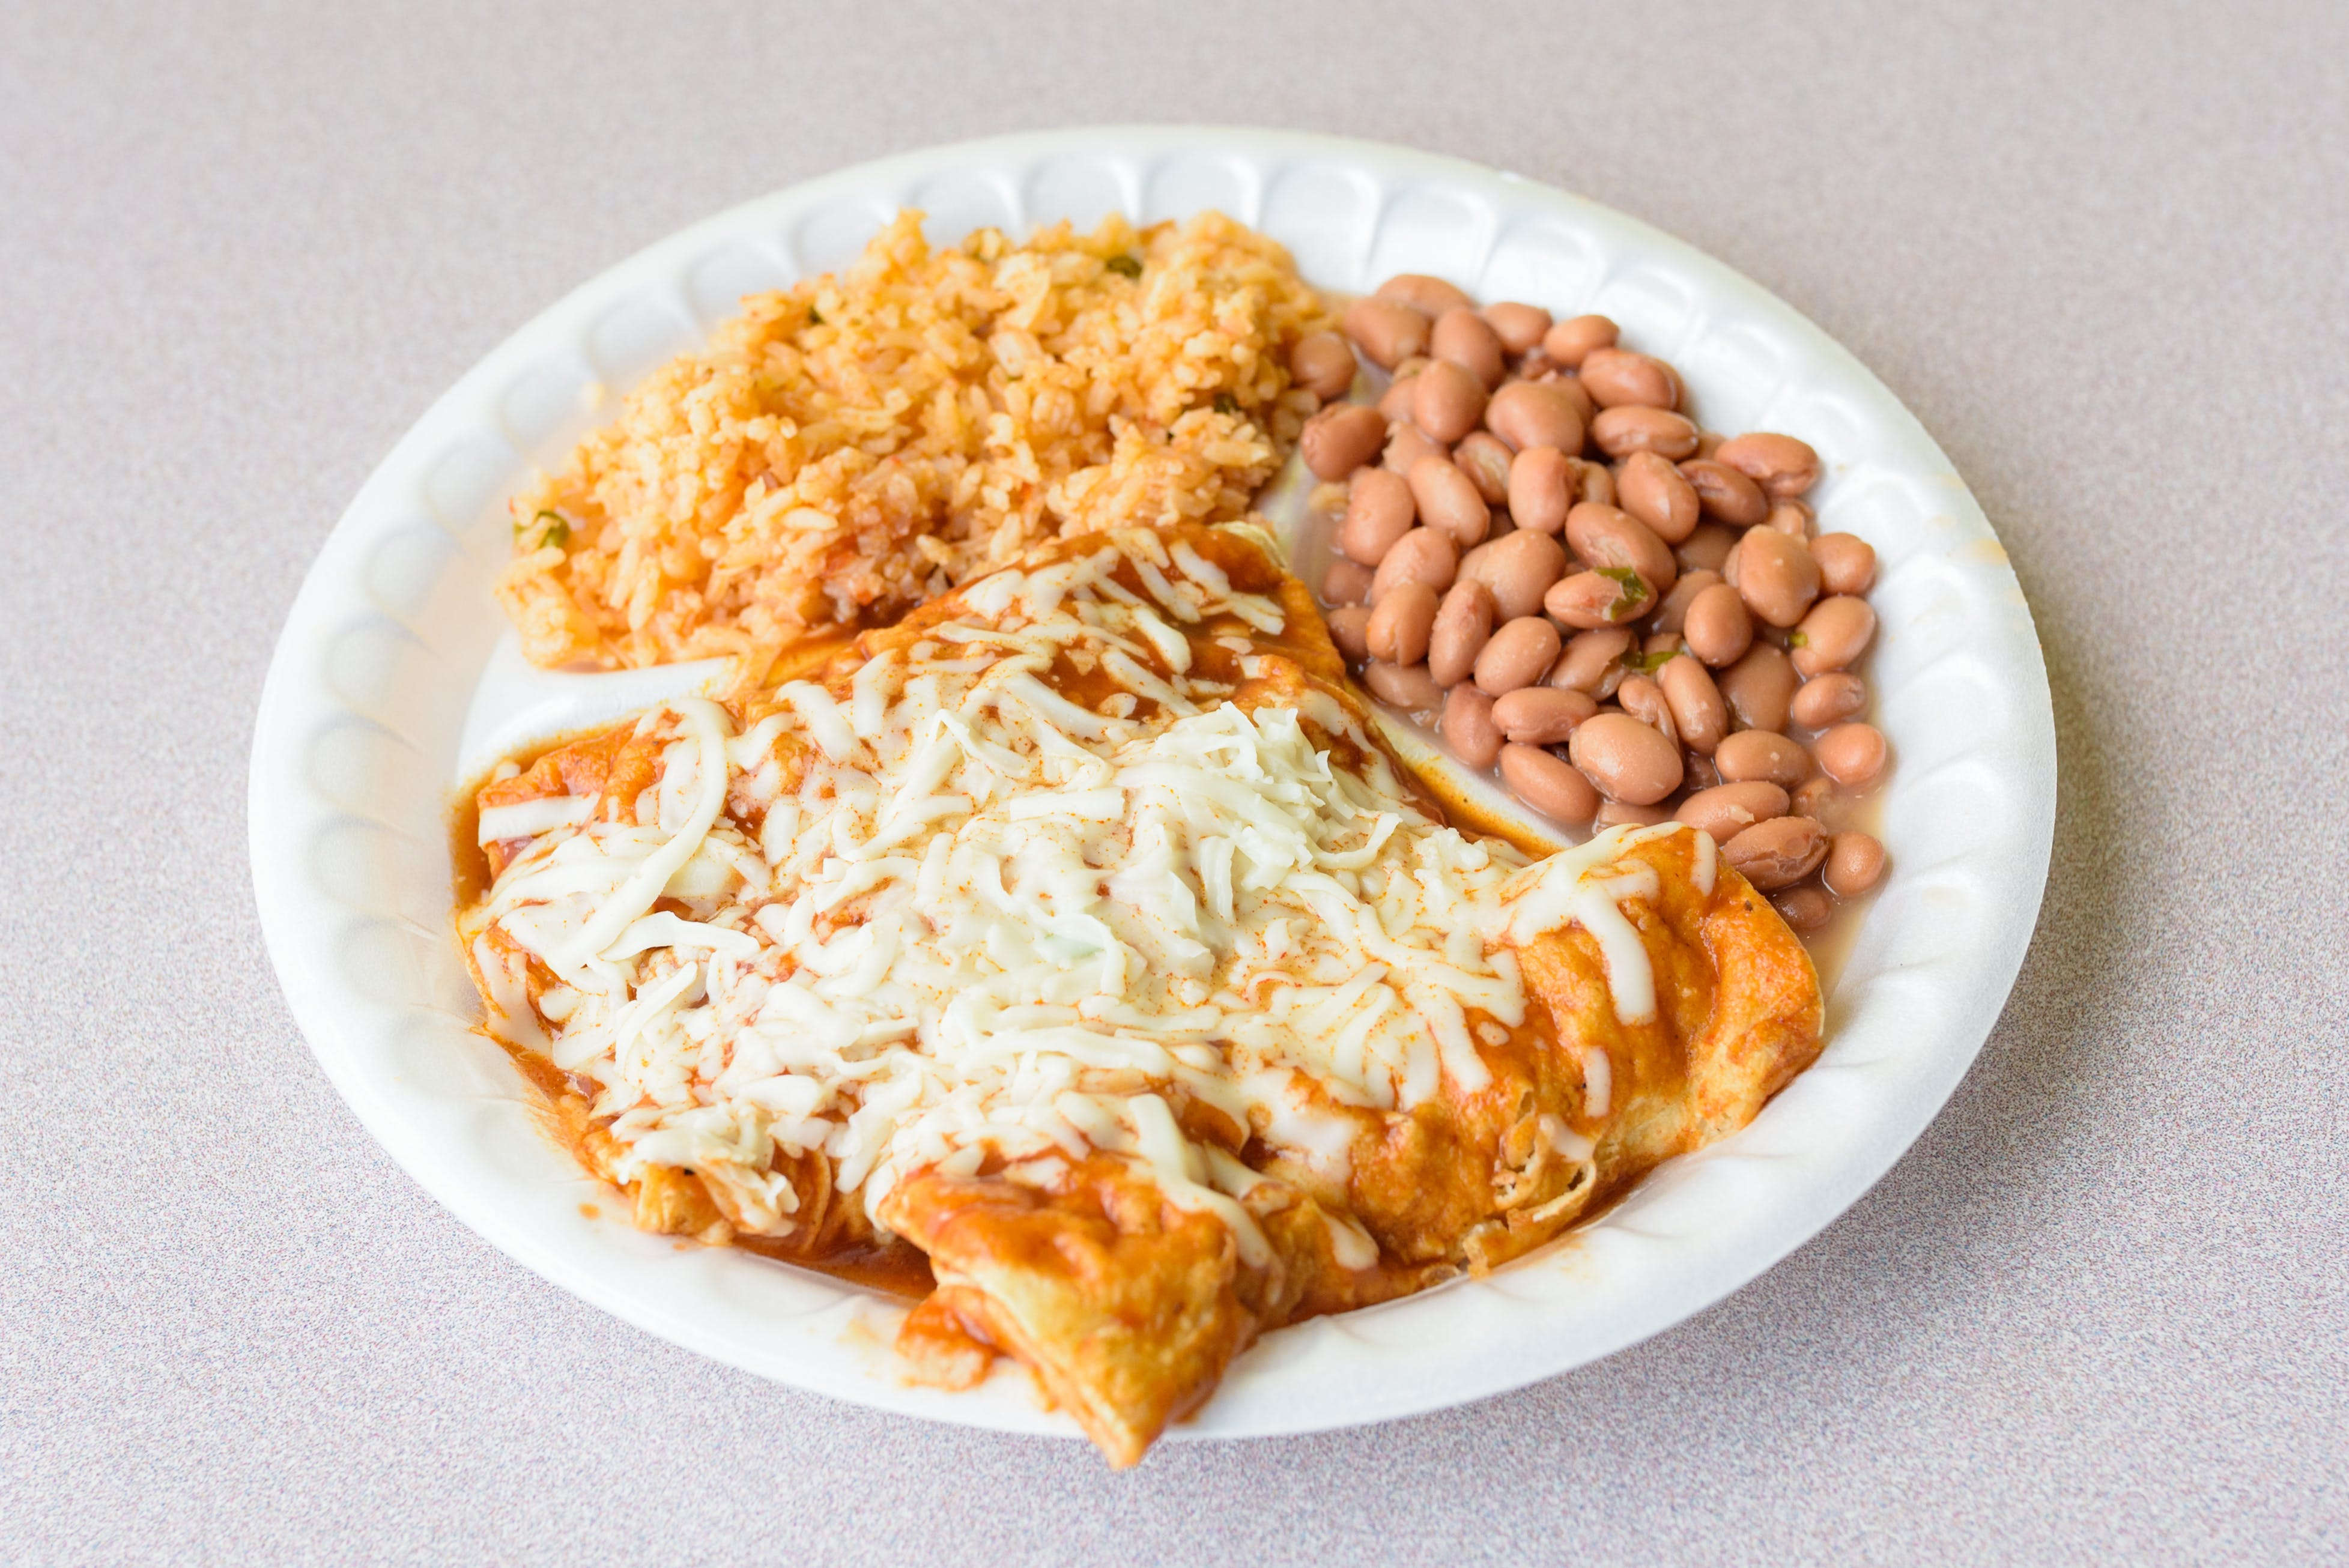 Combo 2: Three Enchiladas & Two Tacos for $13.99 from Taco King - W Liberty Rd. in Ann Arbor, MI